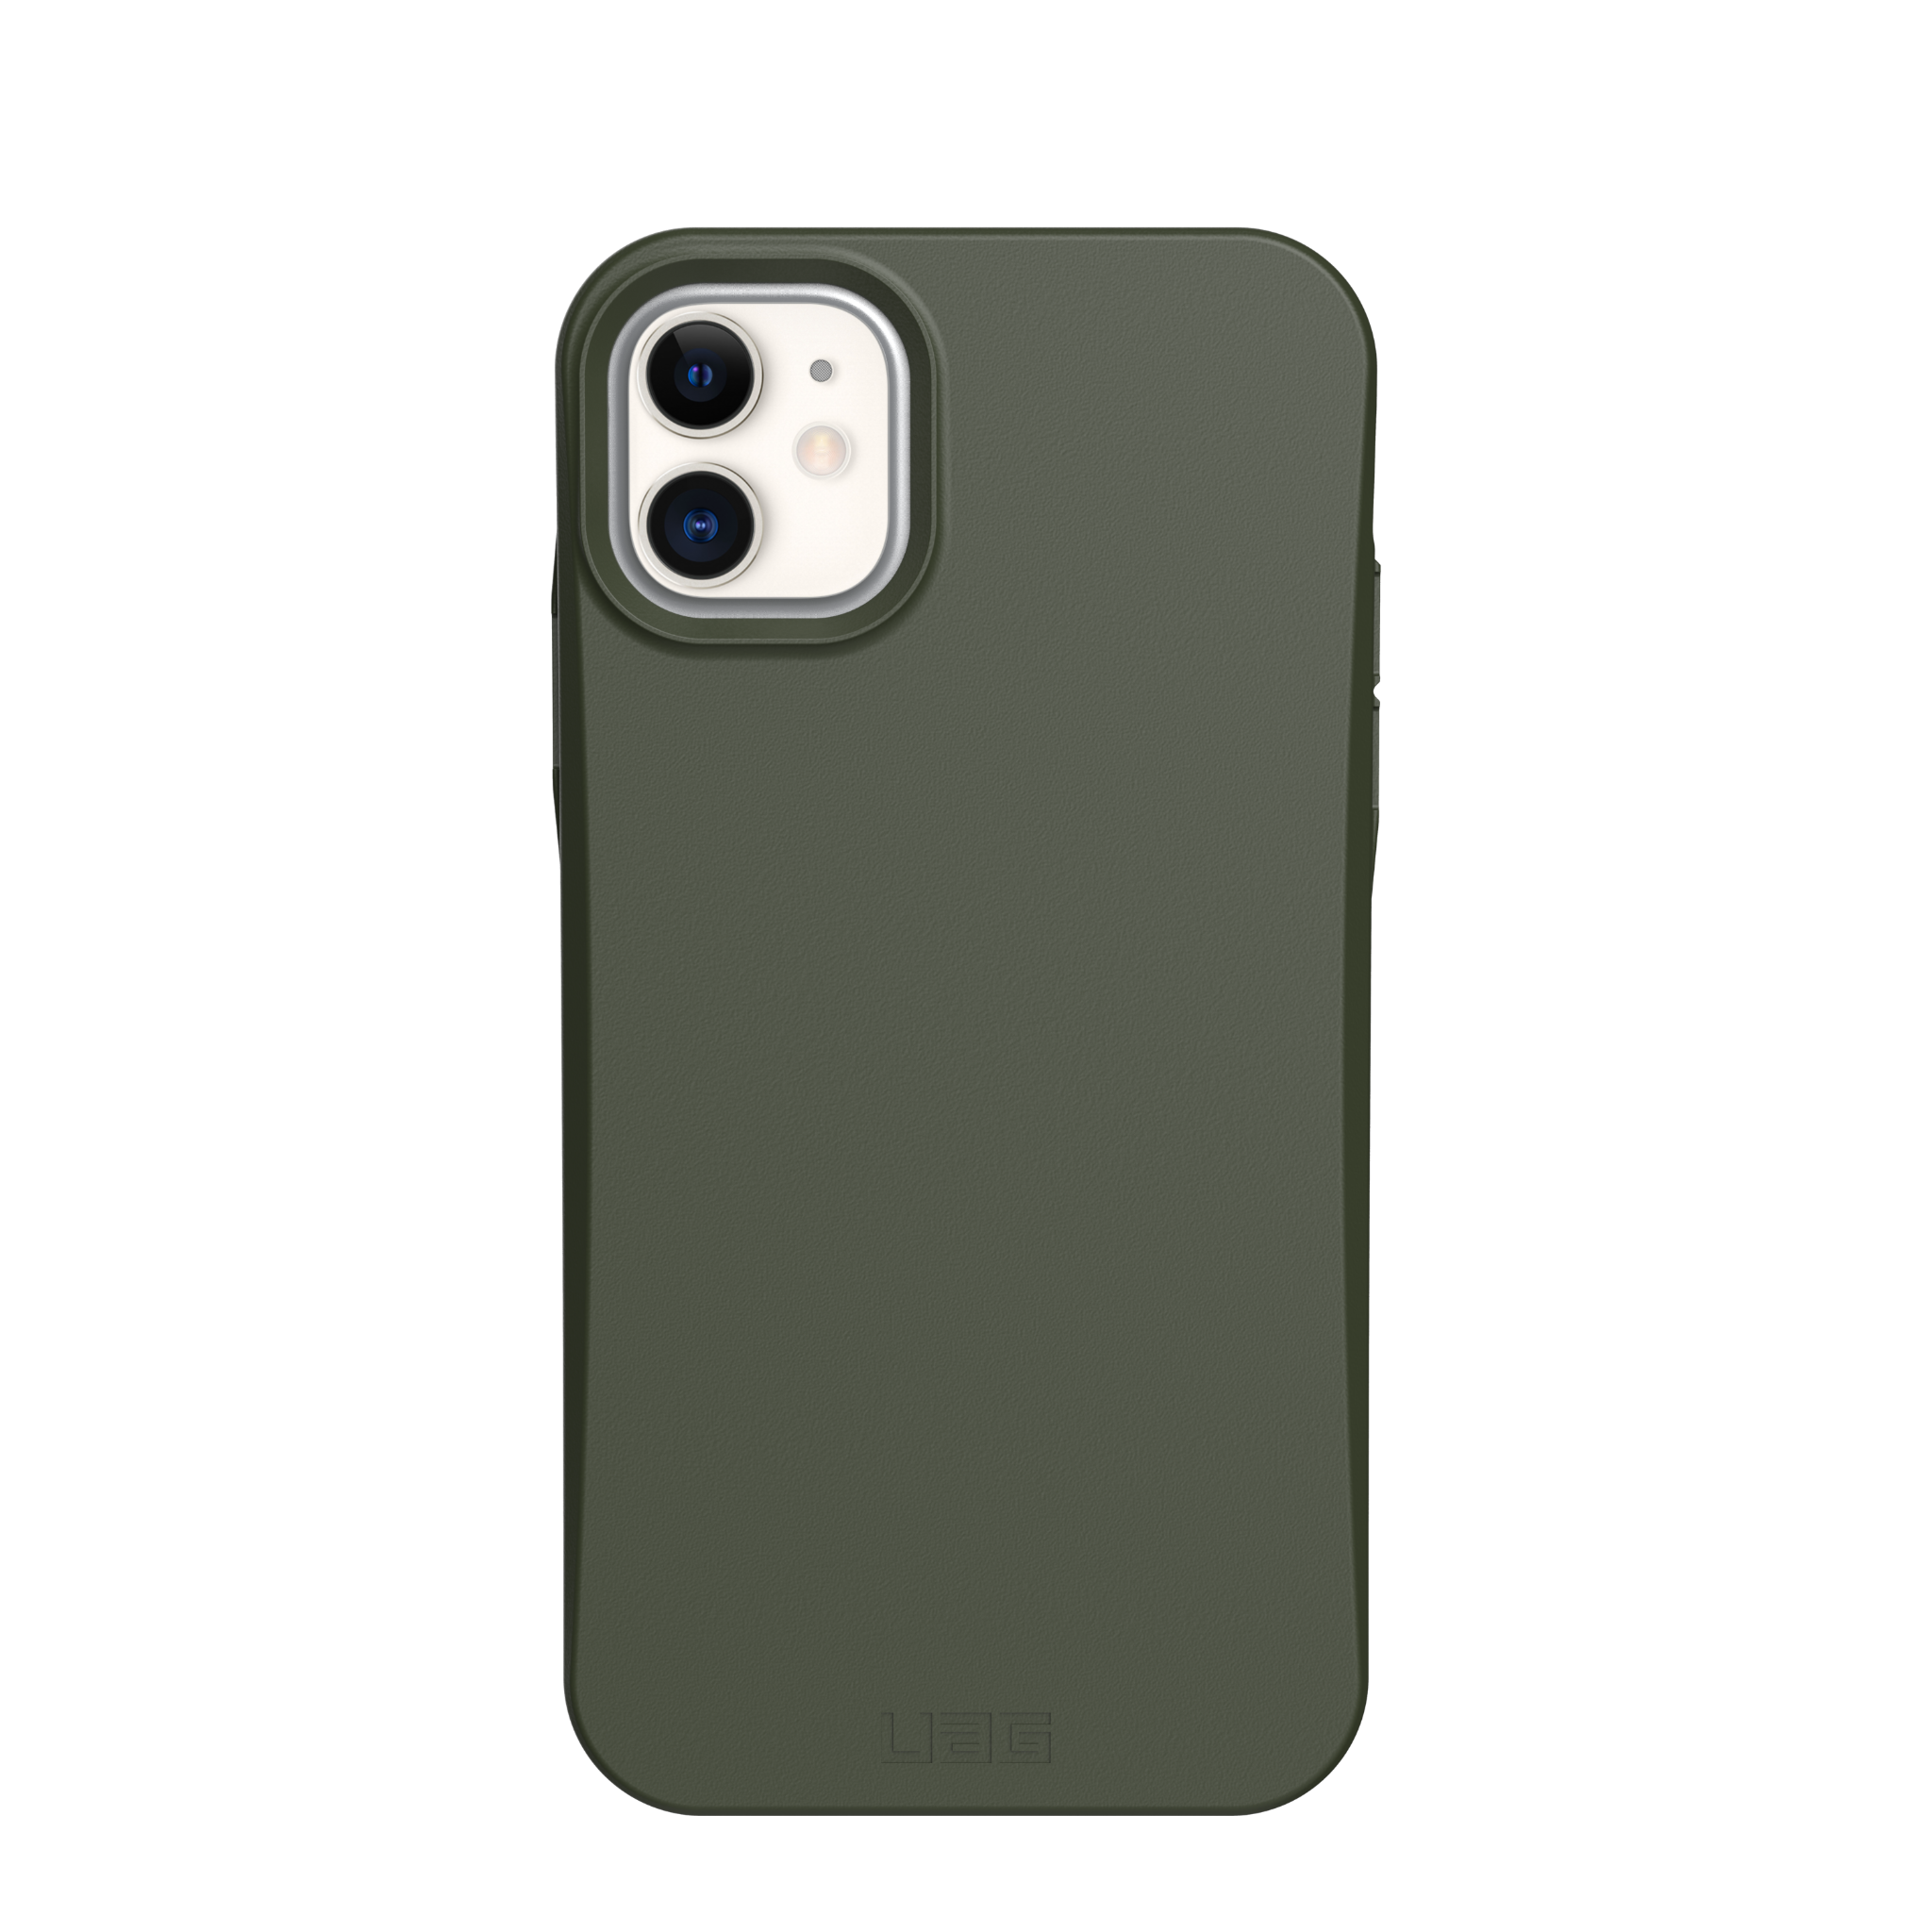 Ốp lưng Outback Biodegradable cho iPhone 11 [6.1-inch]